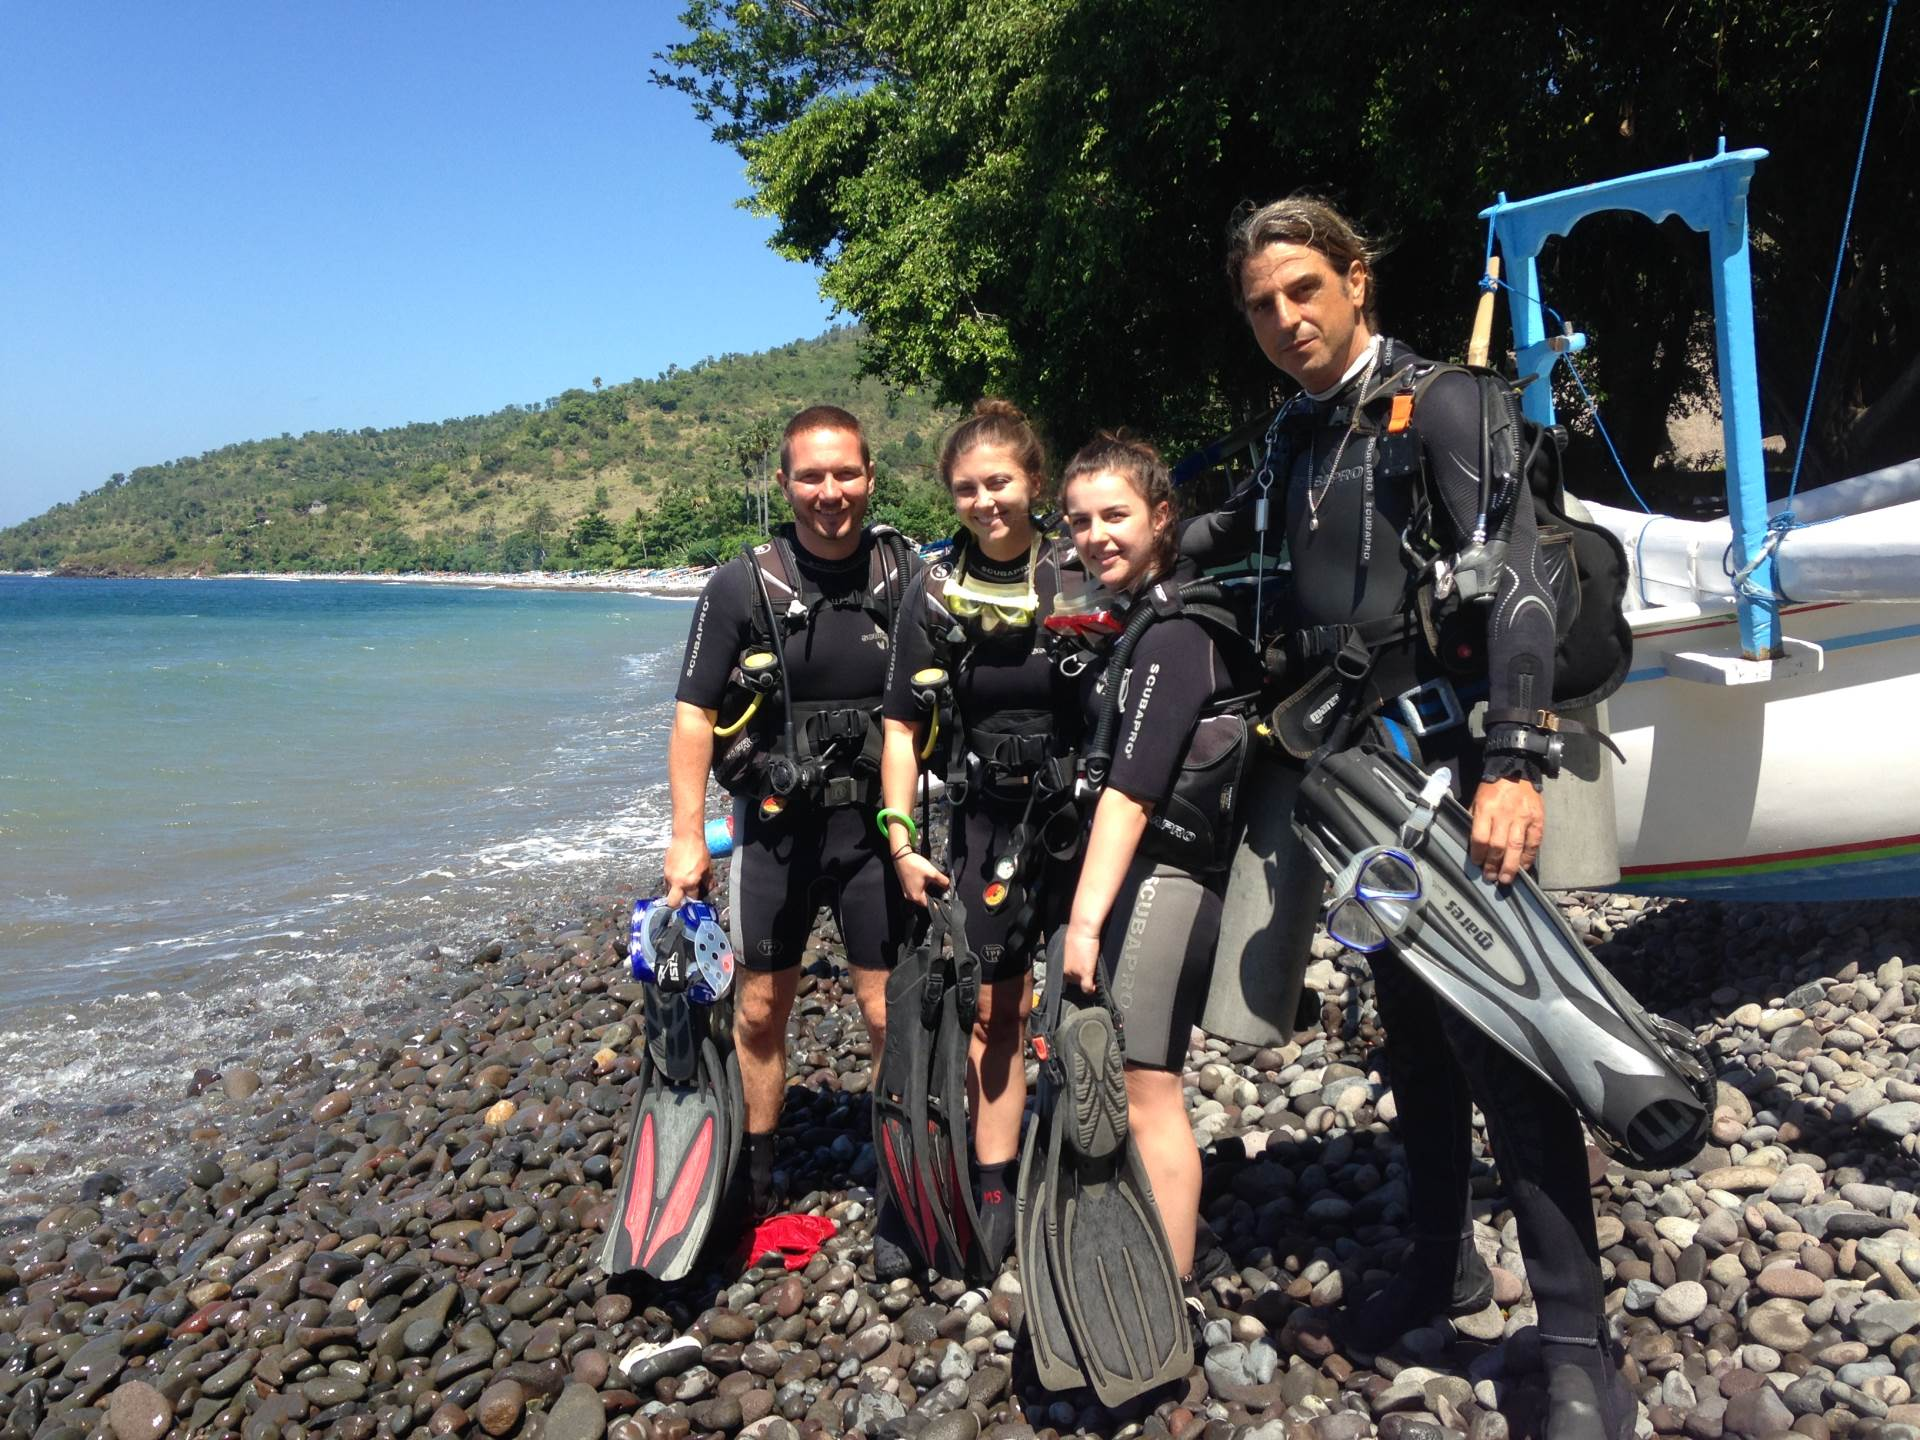 MY PADI Open Water Course with No Fear Diving, the best dive school shop center in Amed Bali.  Mein PADI  Open Water Kurs mit No Fear Diving, der besten Tauchschule in Amed Bali.